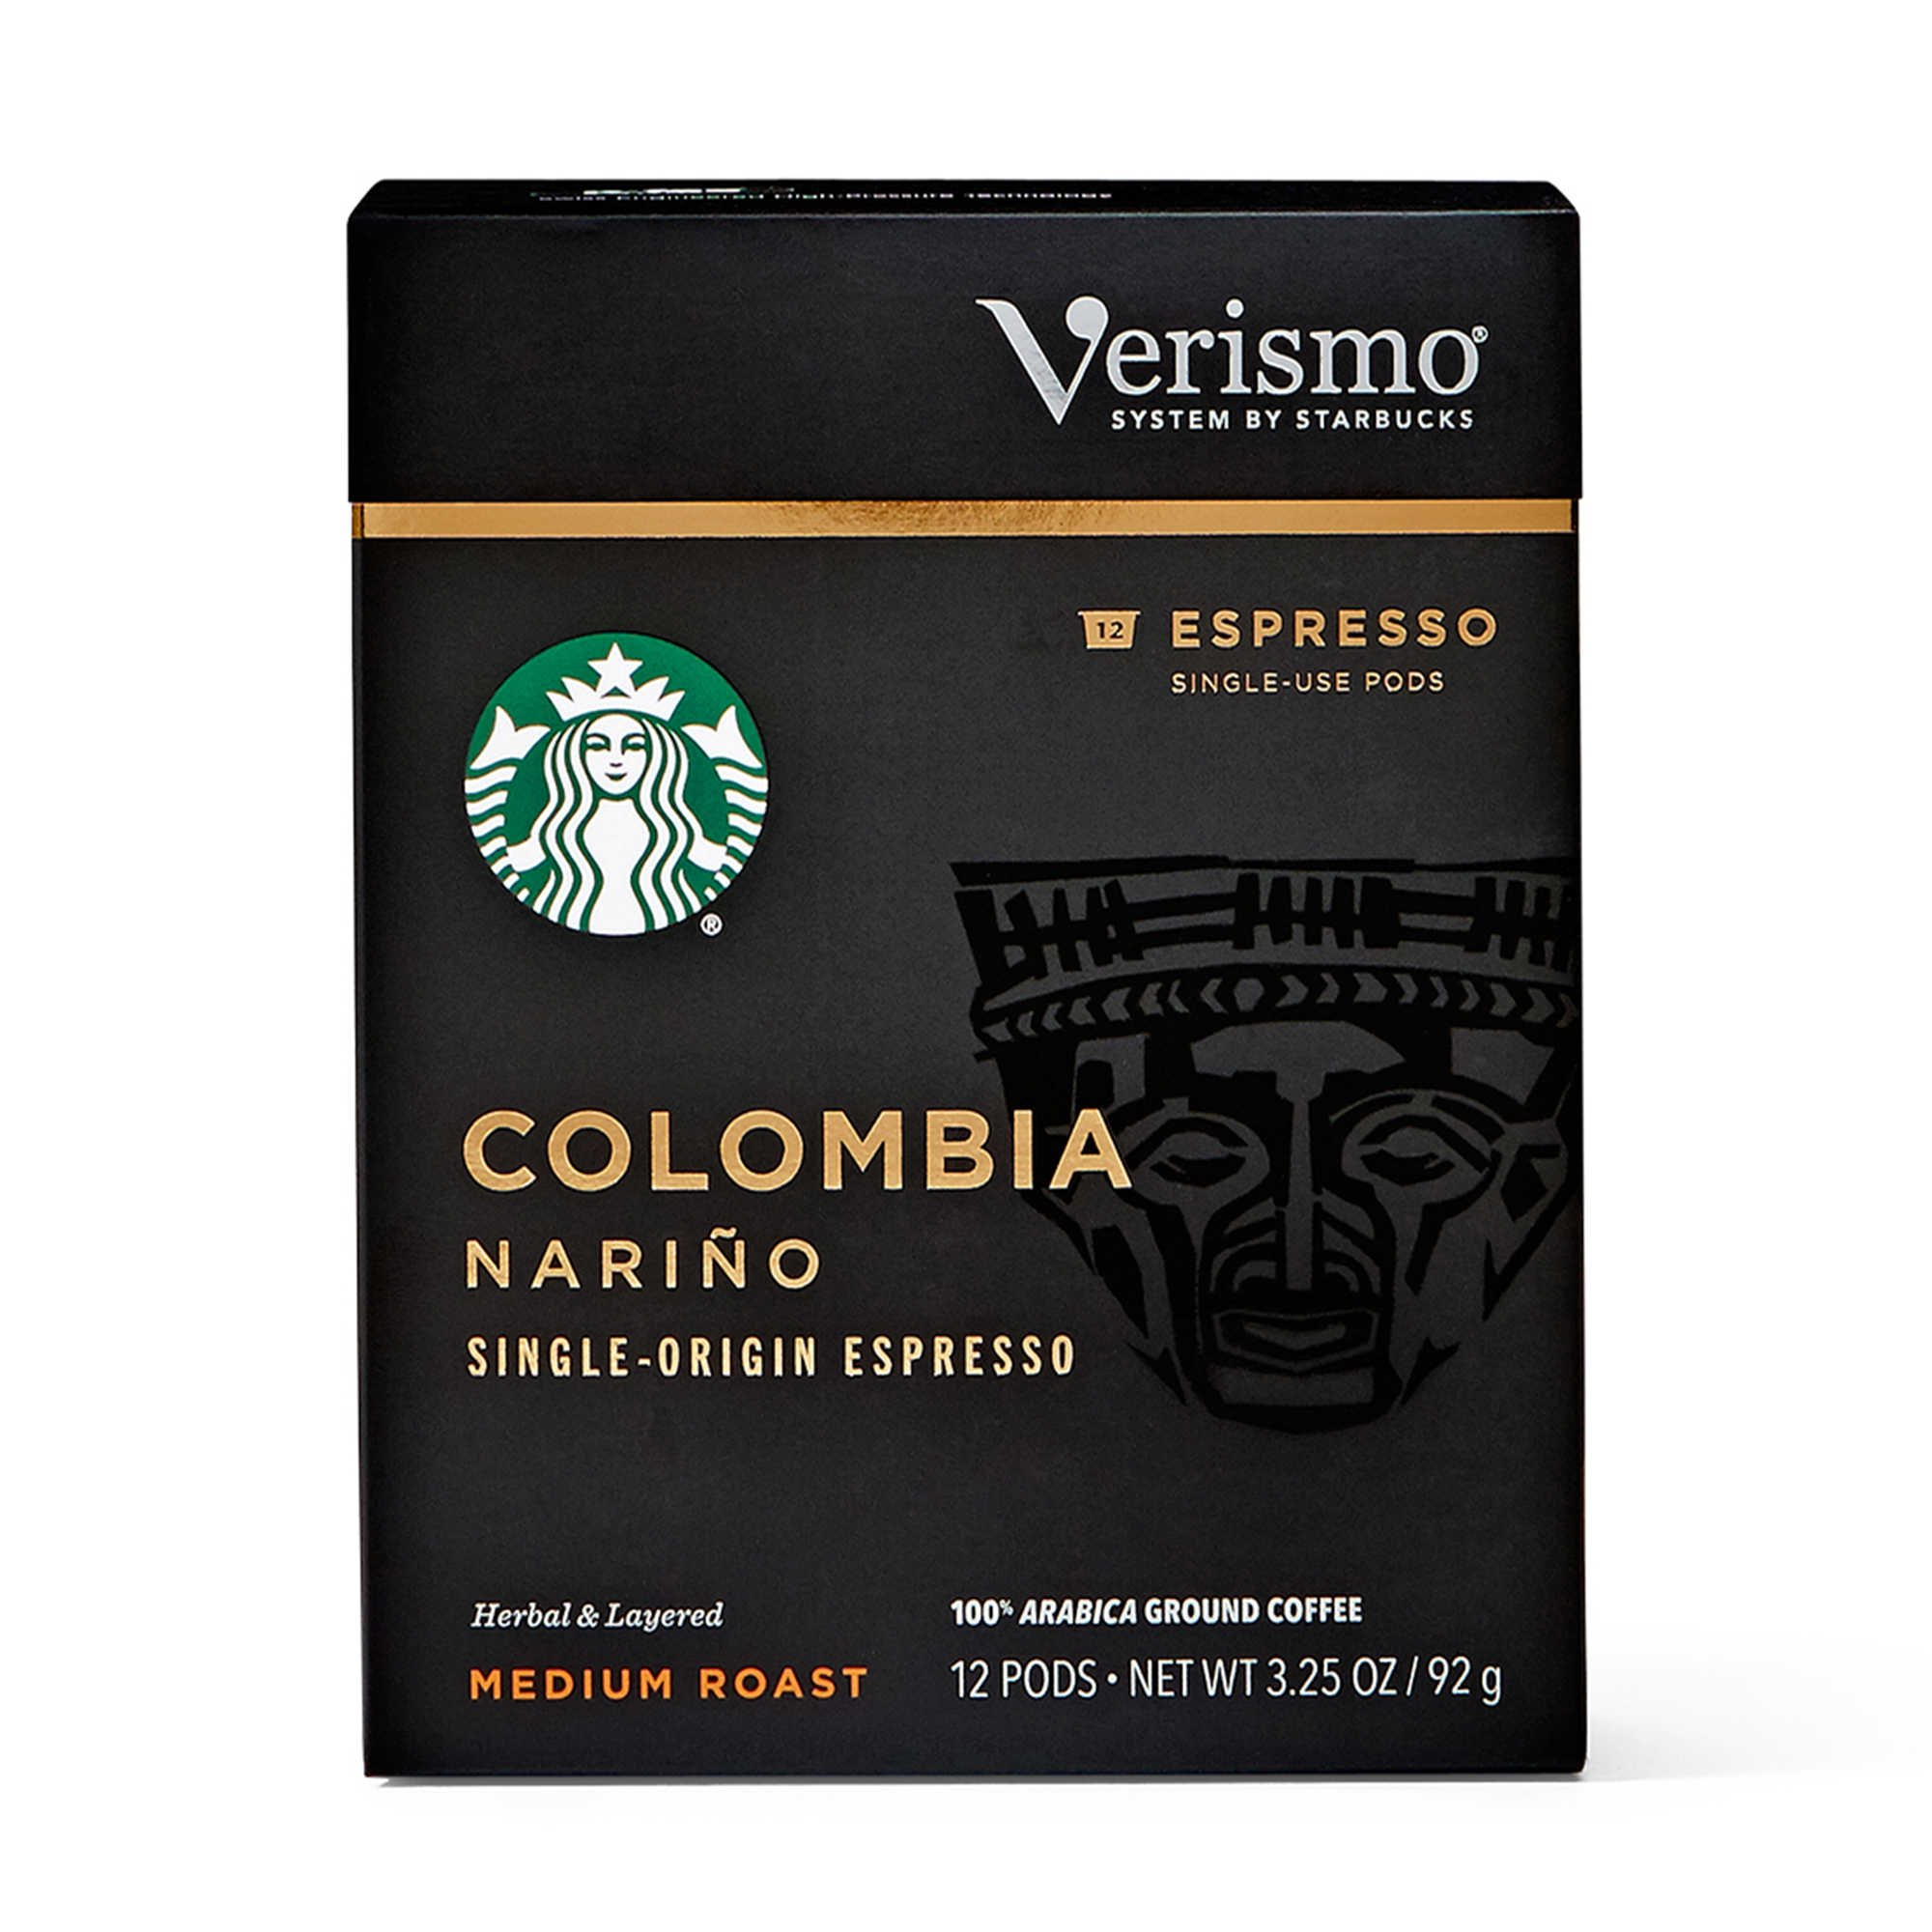 Starbucks Single Origin Colombia Narino Espresso Verismo Pods 12